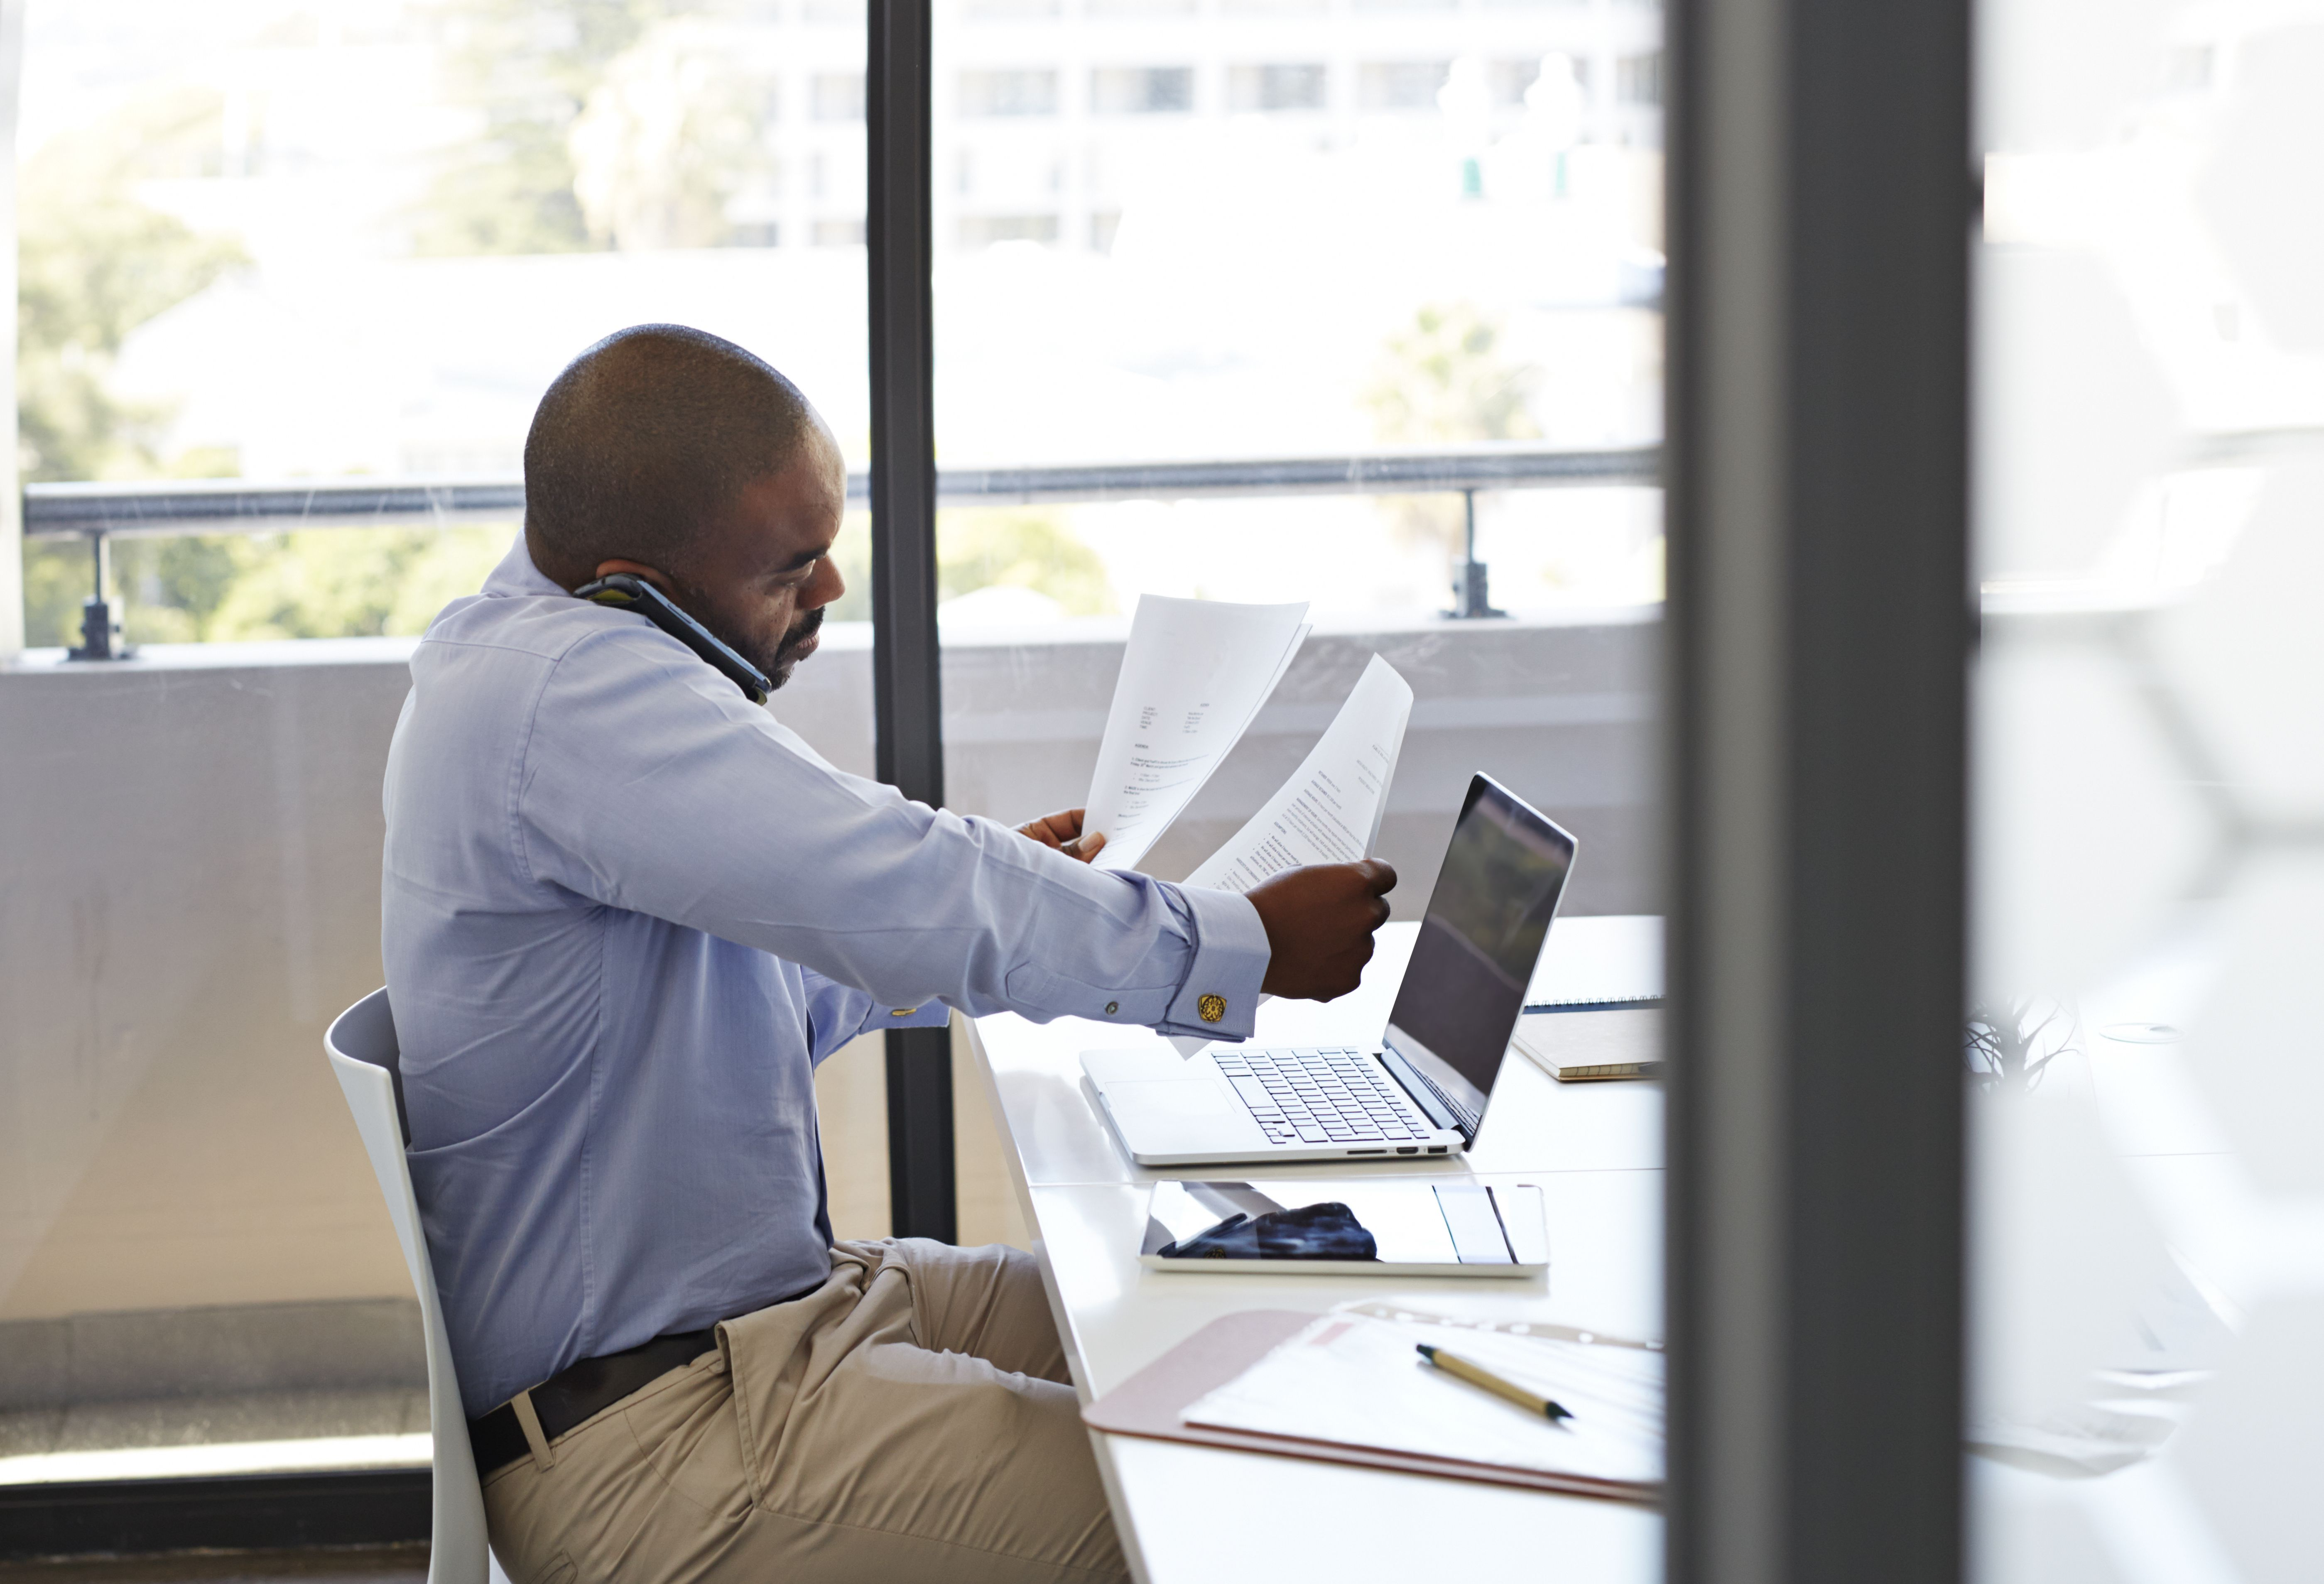 Businessman on phone and looking threw papers